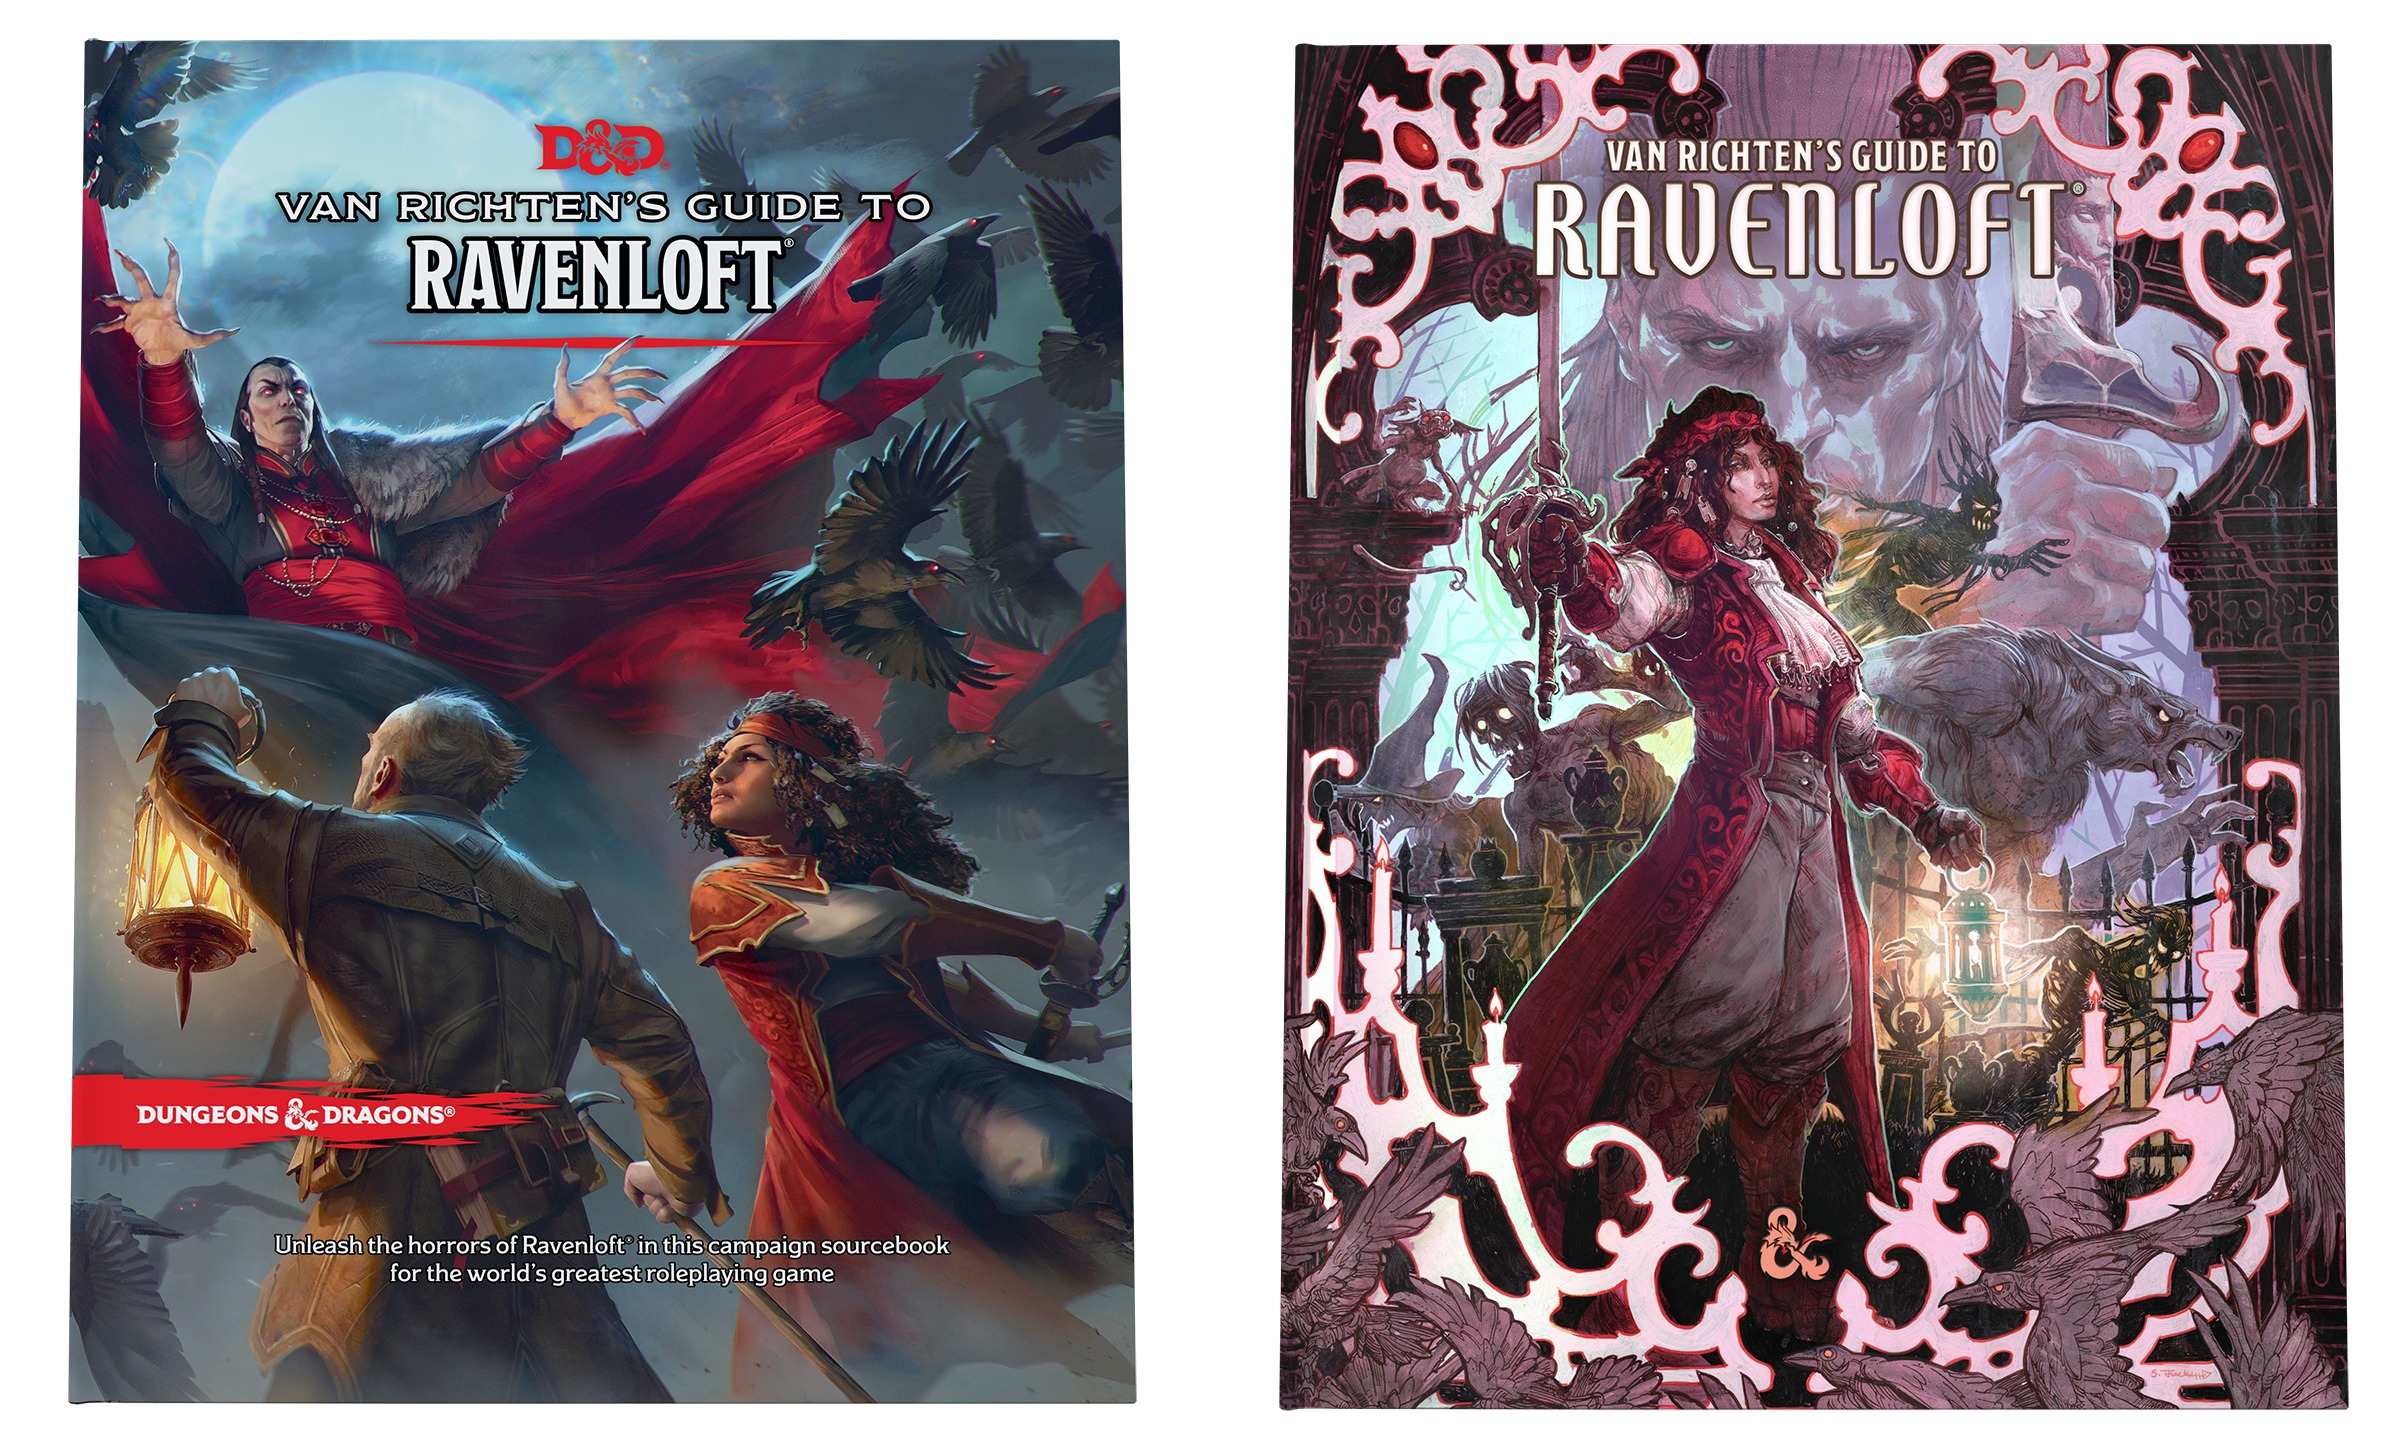 5E D&D horror Van Richten's Guide to Ravenloft